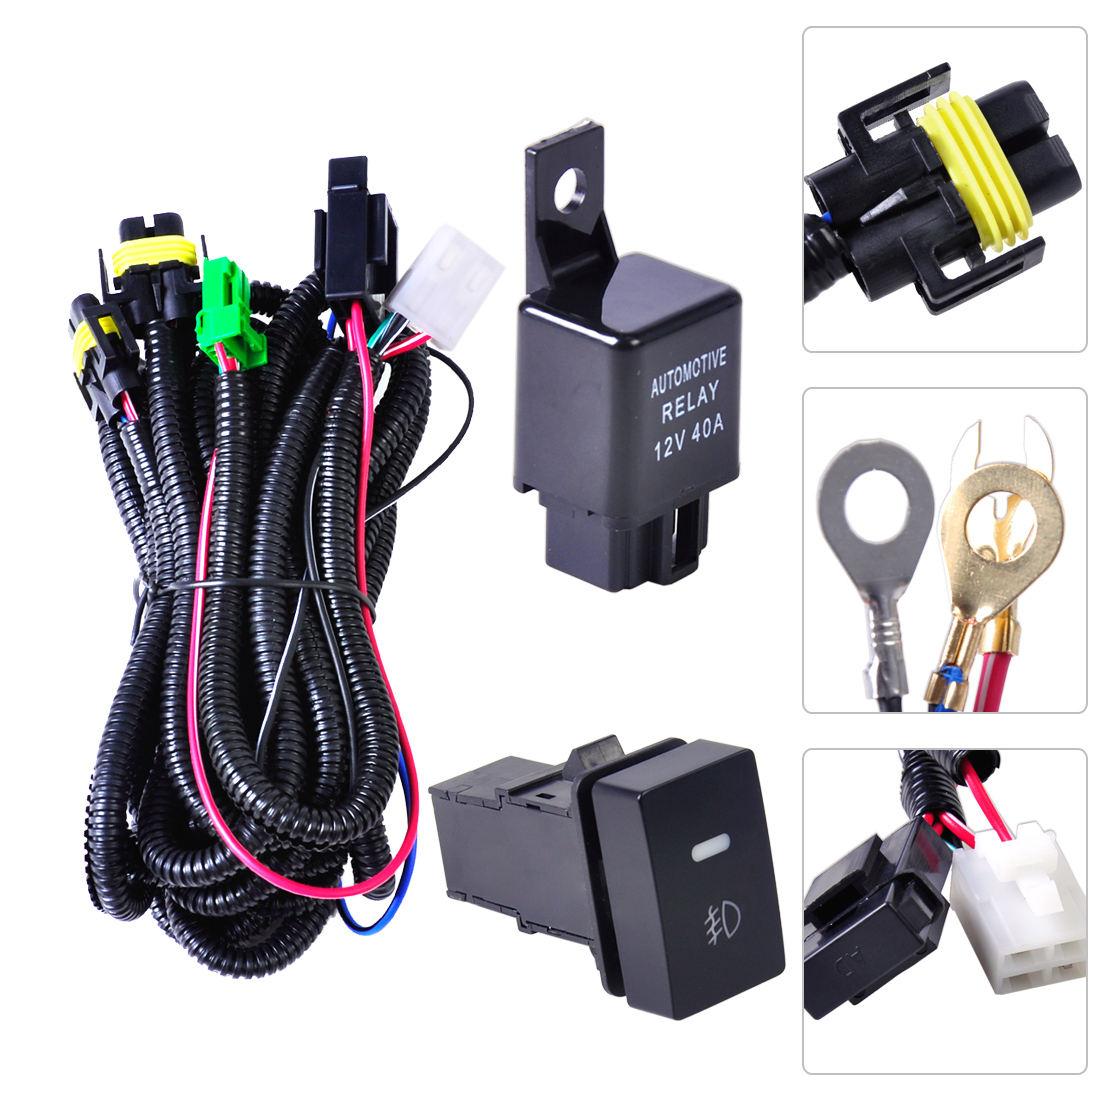 DWCX Wiring Harness Sockets Wire + Switch for H11 Fog Light Lamp for Ford Focus Acura Nissan Suzuki Subaru Lincoln Honda CR-V gztophid wiring harness extension h4 9003 hb2 light connector male to female for socket headlight fog light drl light